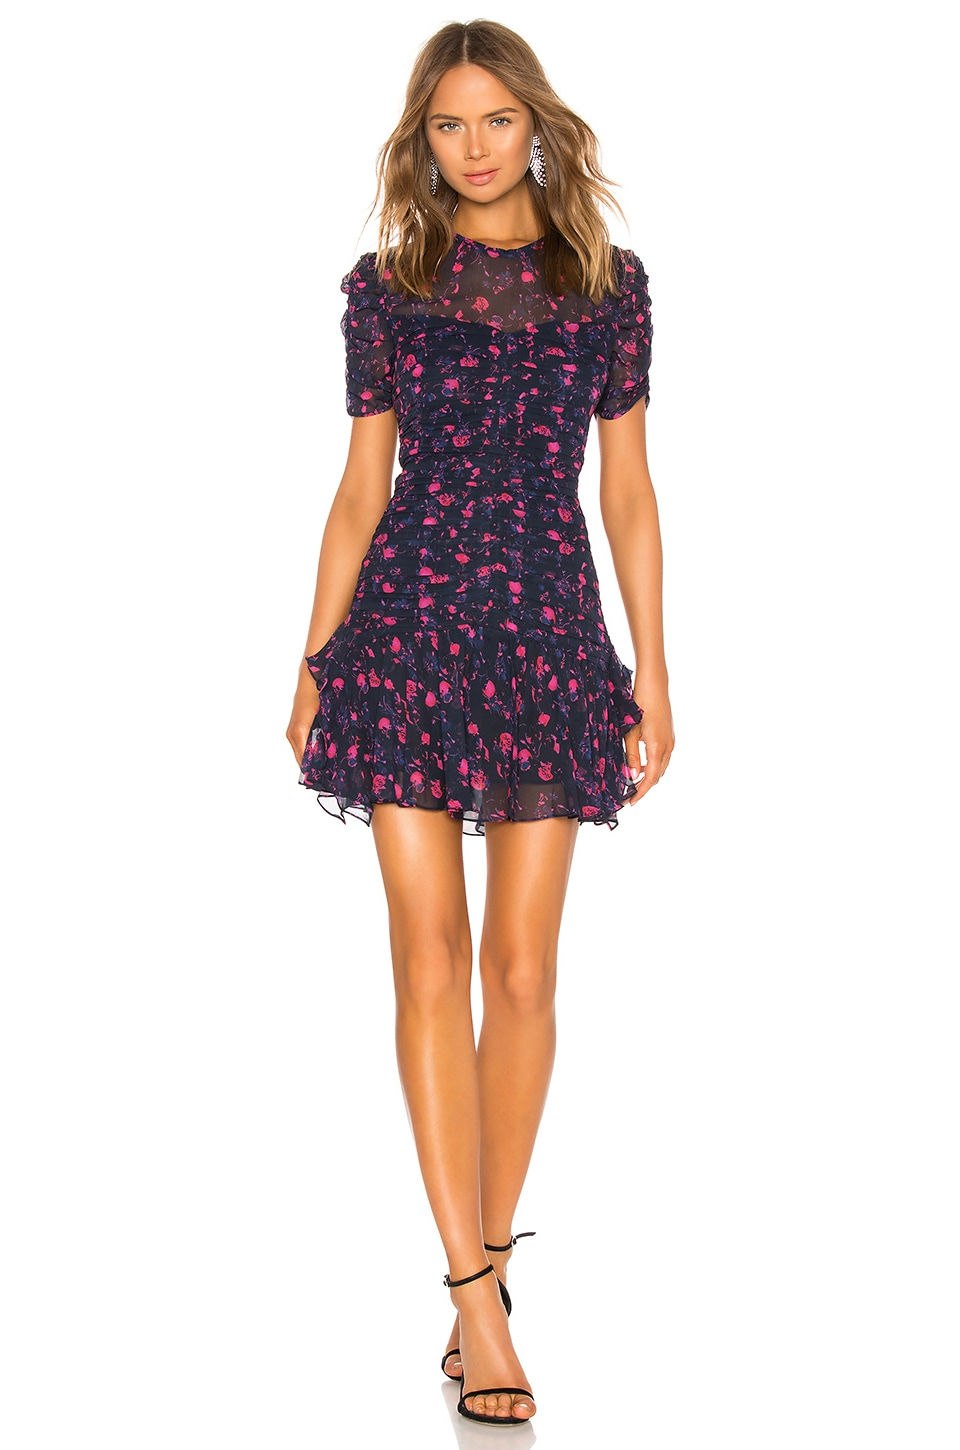 Tanya Taylor Carti Dress in Navy Multi